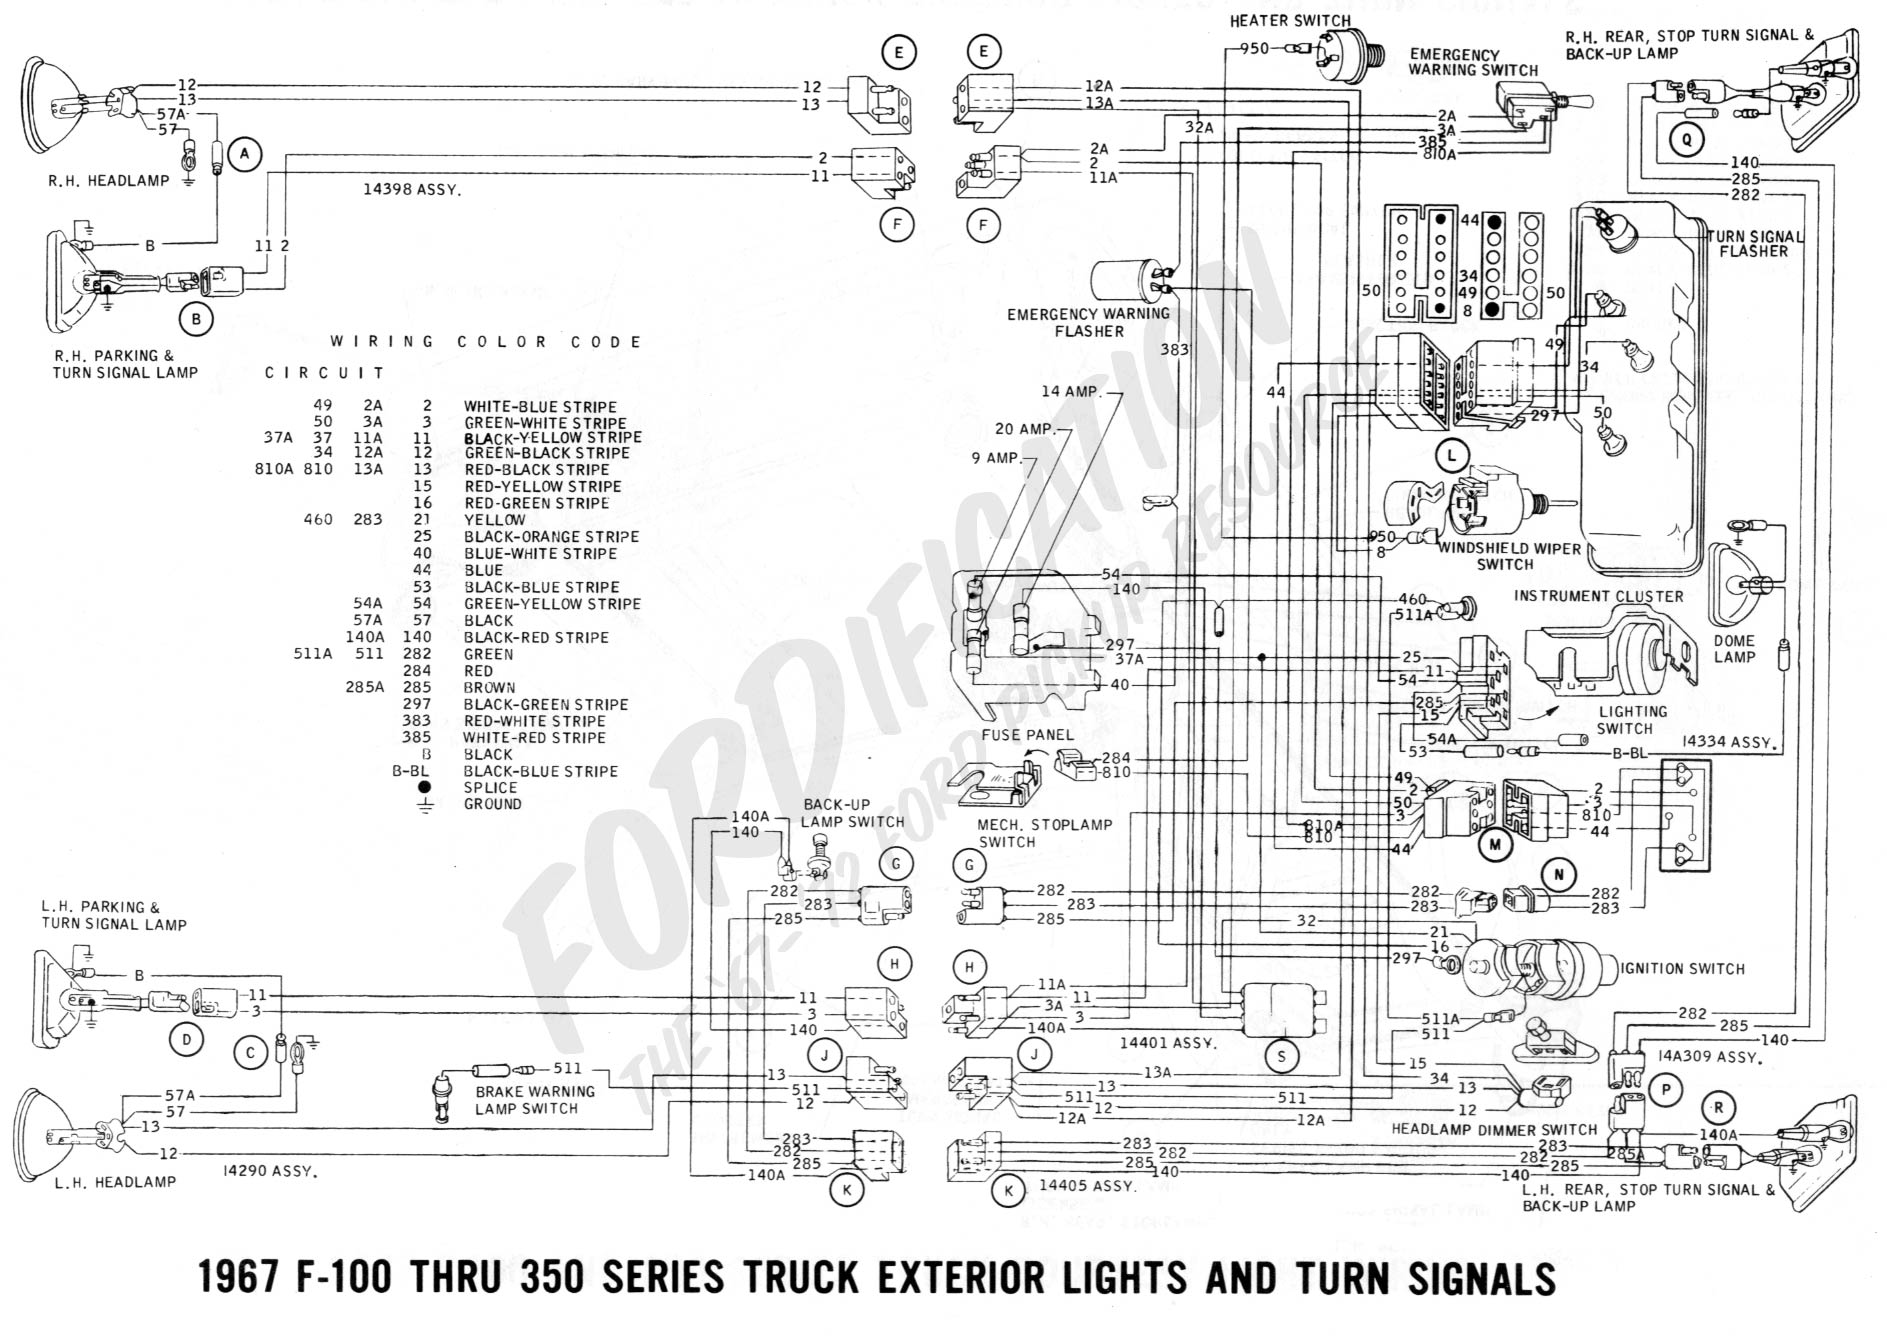 Camper For Ford F 250 Wiring Harness Diagram Opinions About 2005 150 Wire Truck Technical Drawings And Schematics Section H Diagrams